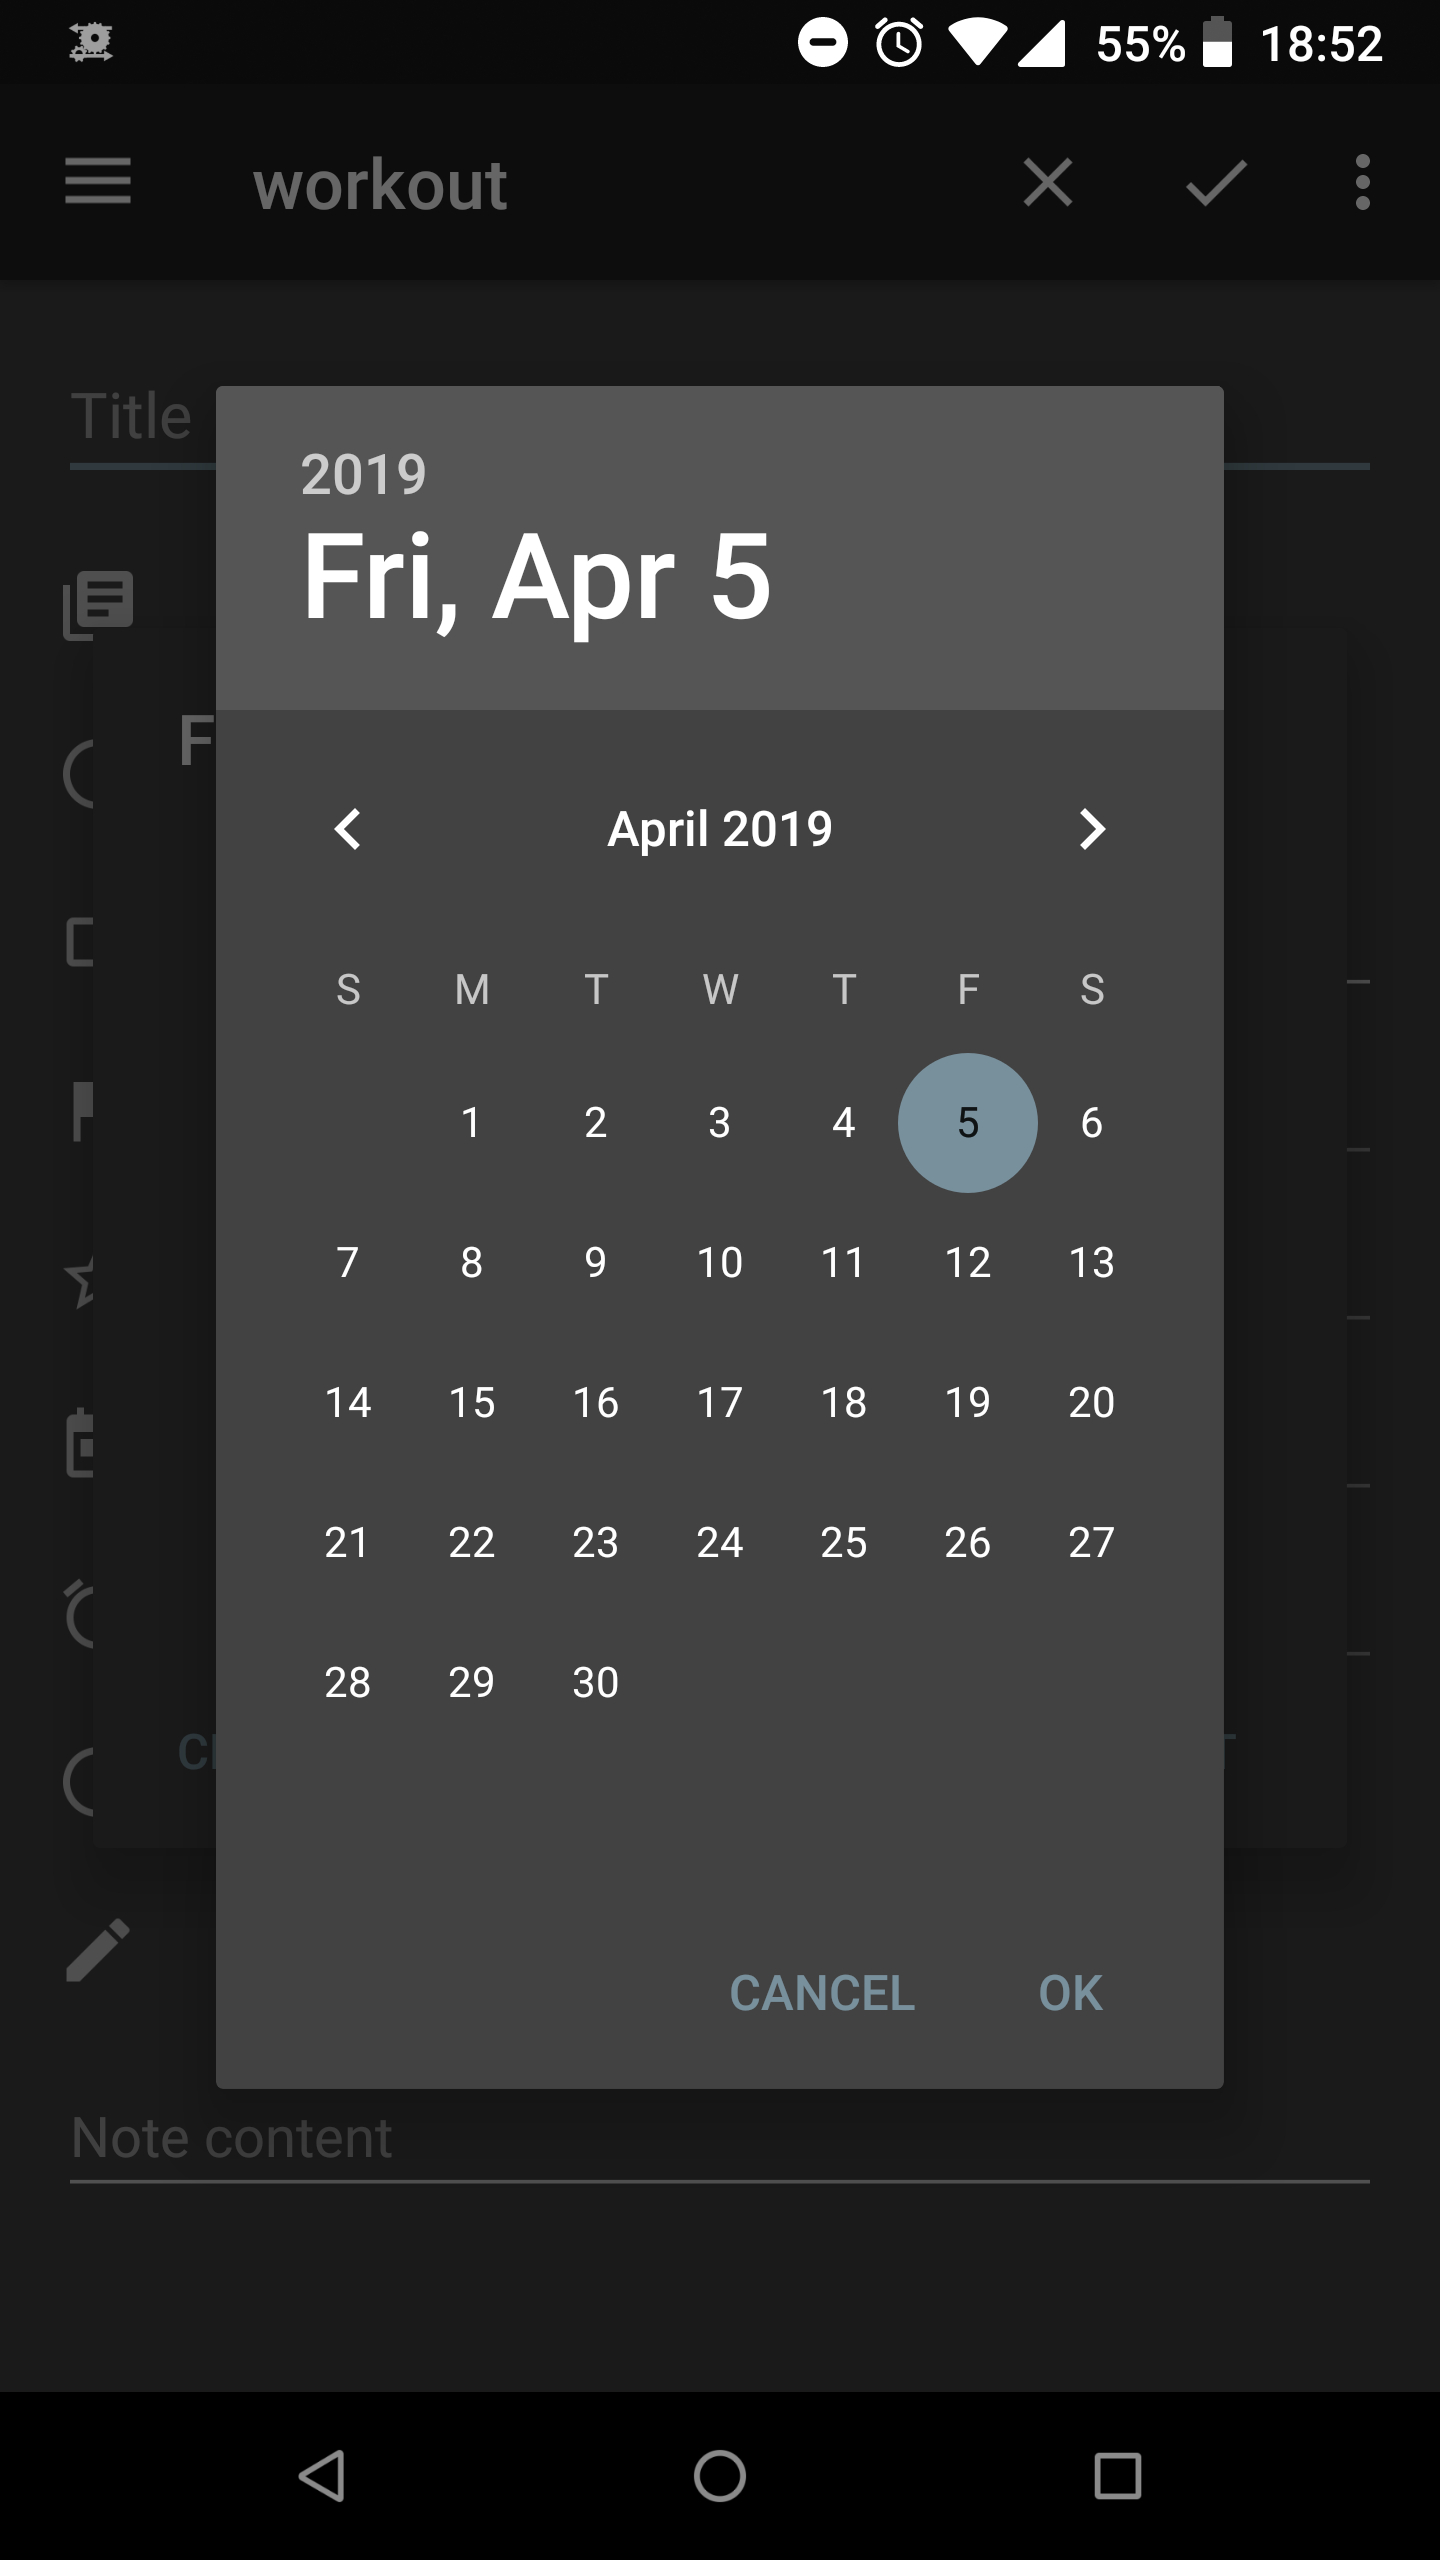 Change Week Start Day In Calendar For Date Selection · Issue